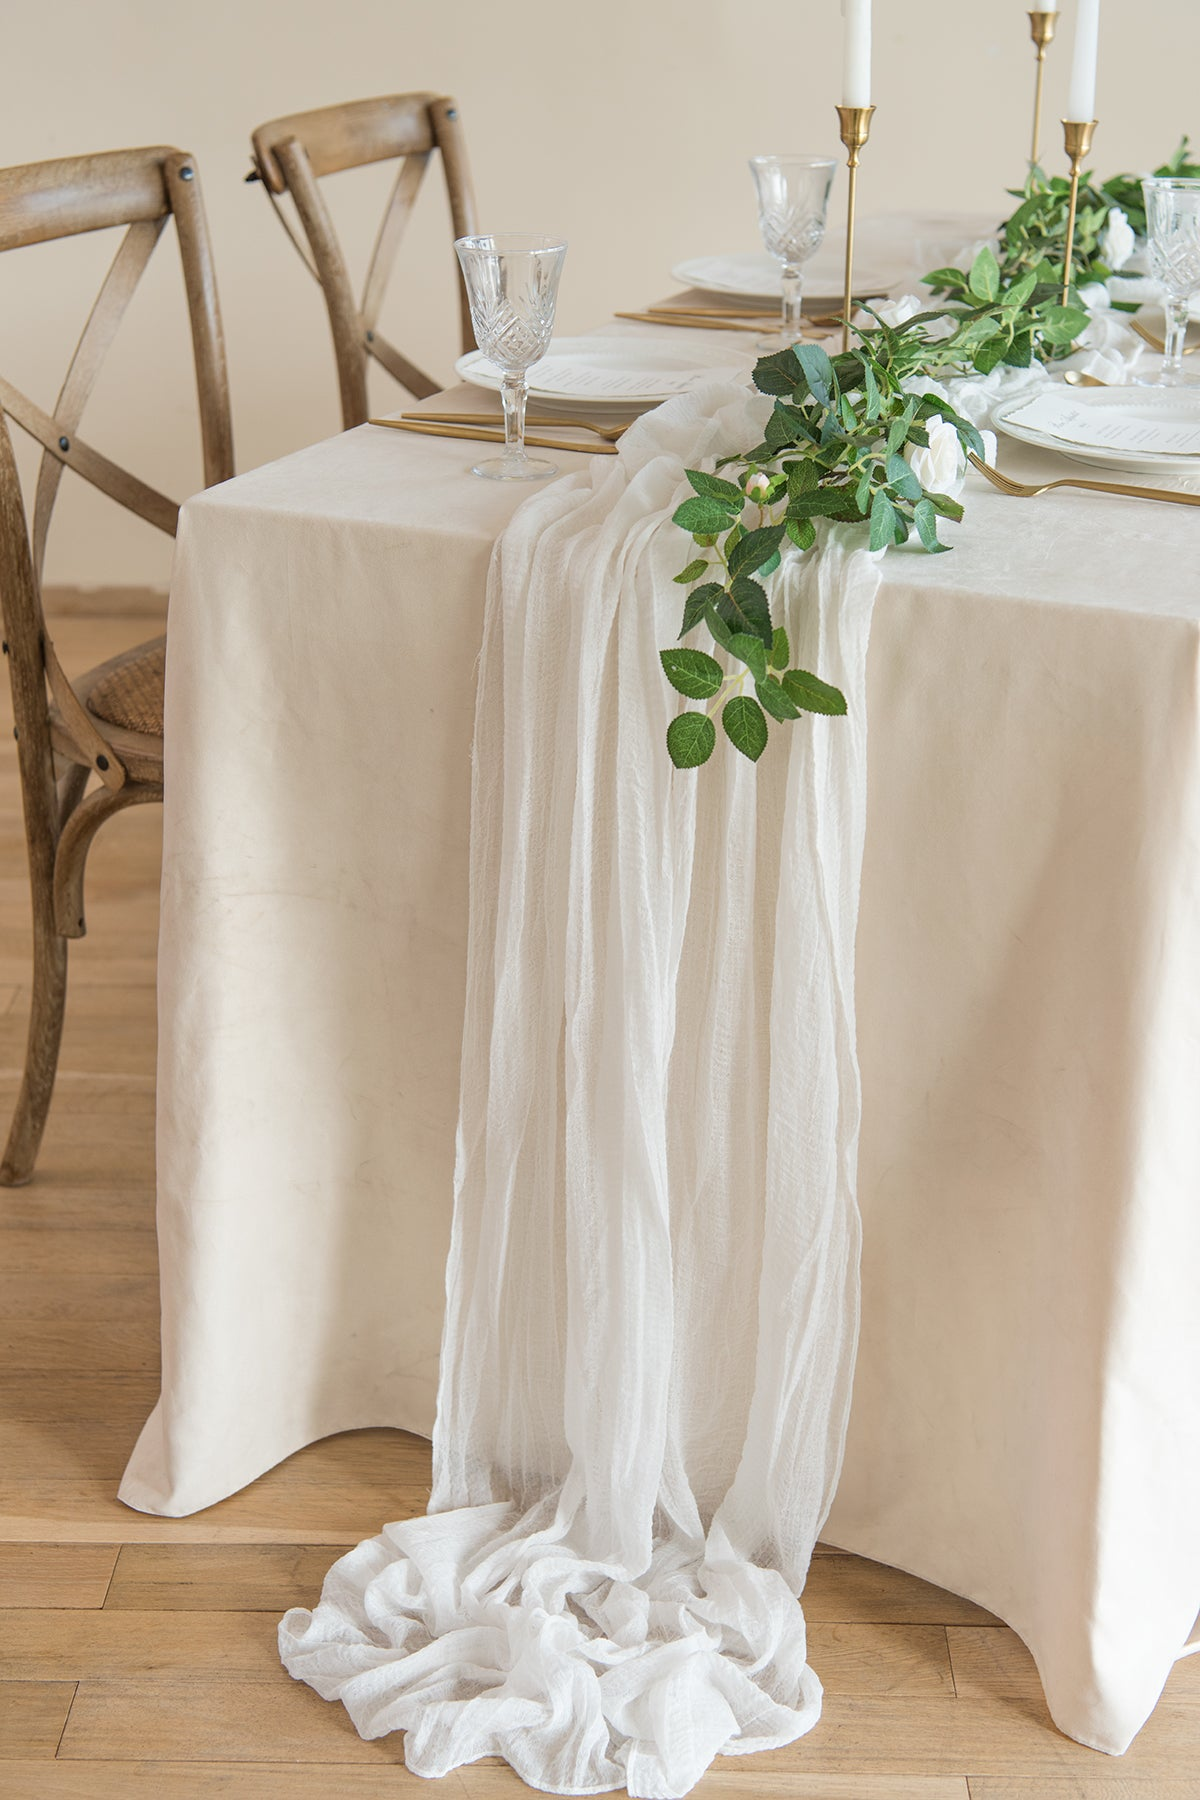 "Rustic Gauze Cheesecloth Table Runner 30""w x 10FT - 7 colors"